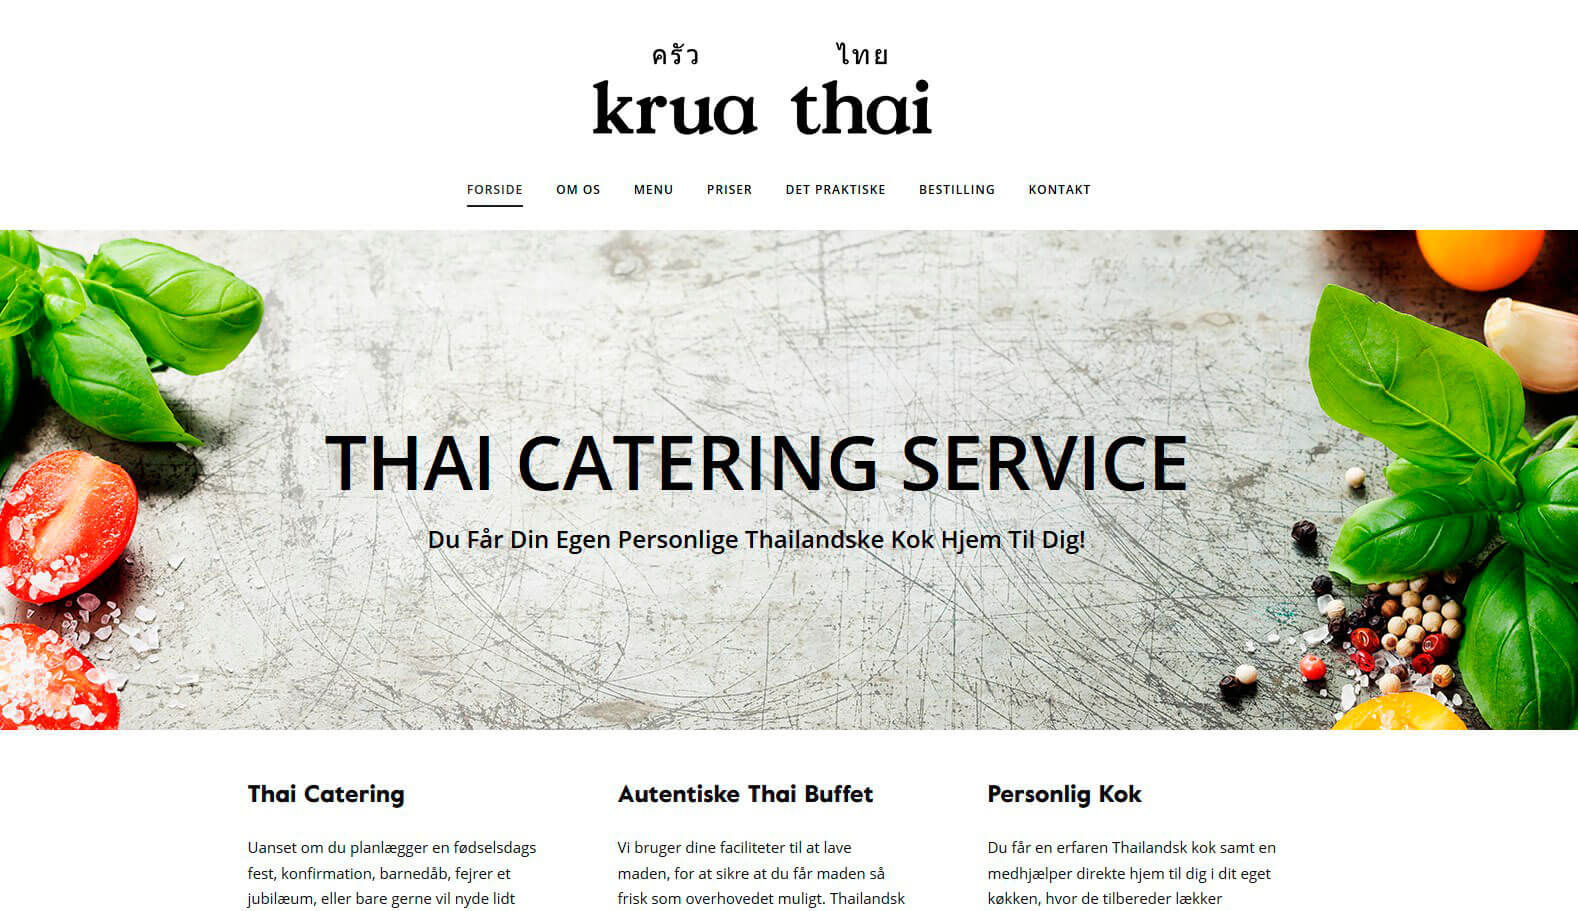 Krua Thai Catering